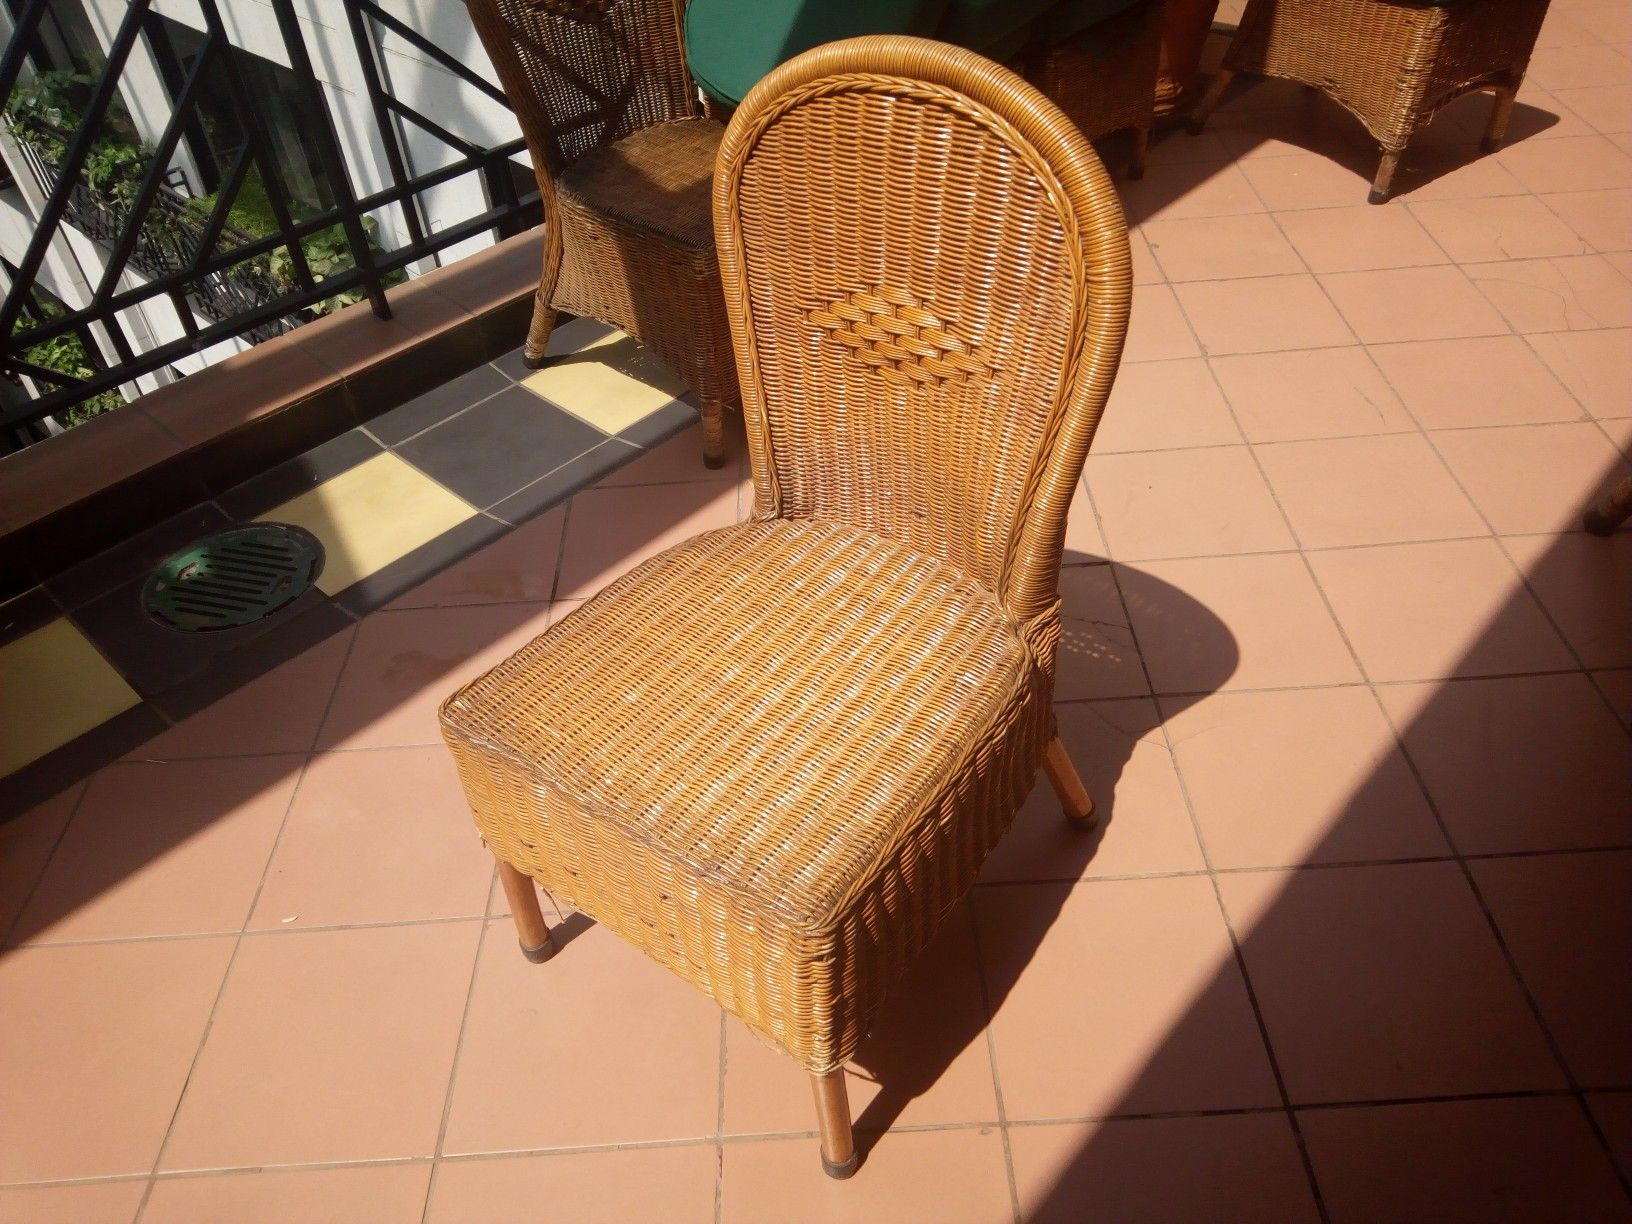 Rattan dinning chair sorted for repairs.. . @prilaga #boutiquehotels #furniture #rattanbags #realestateagent #rattanbagbali #antiquefurniture #woody #hotels #furniturebali #hotelstay #wood #realestate #rattanfurniture #furniturebandung #woodwork #realestateinvesting #hotelstyle #woodworking #furnituredesign #rattan #realestatebroker #realestatelife #rattanbag #prilaga #woods #hotelsandresorts #designhotels